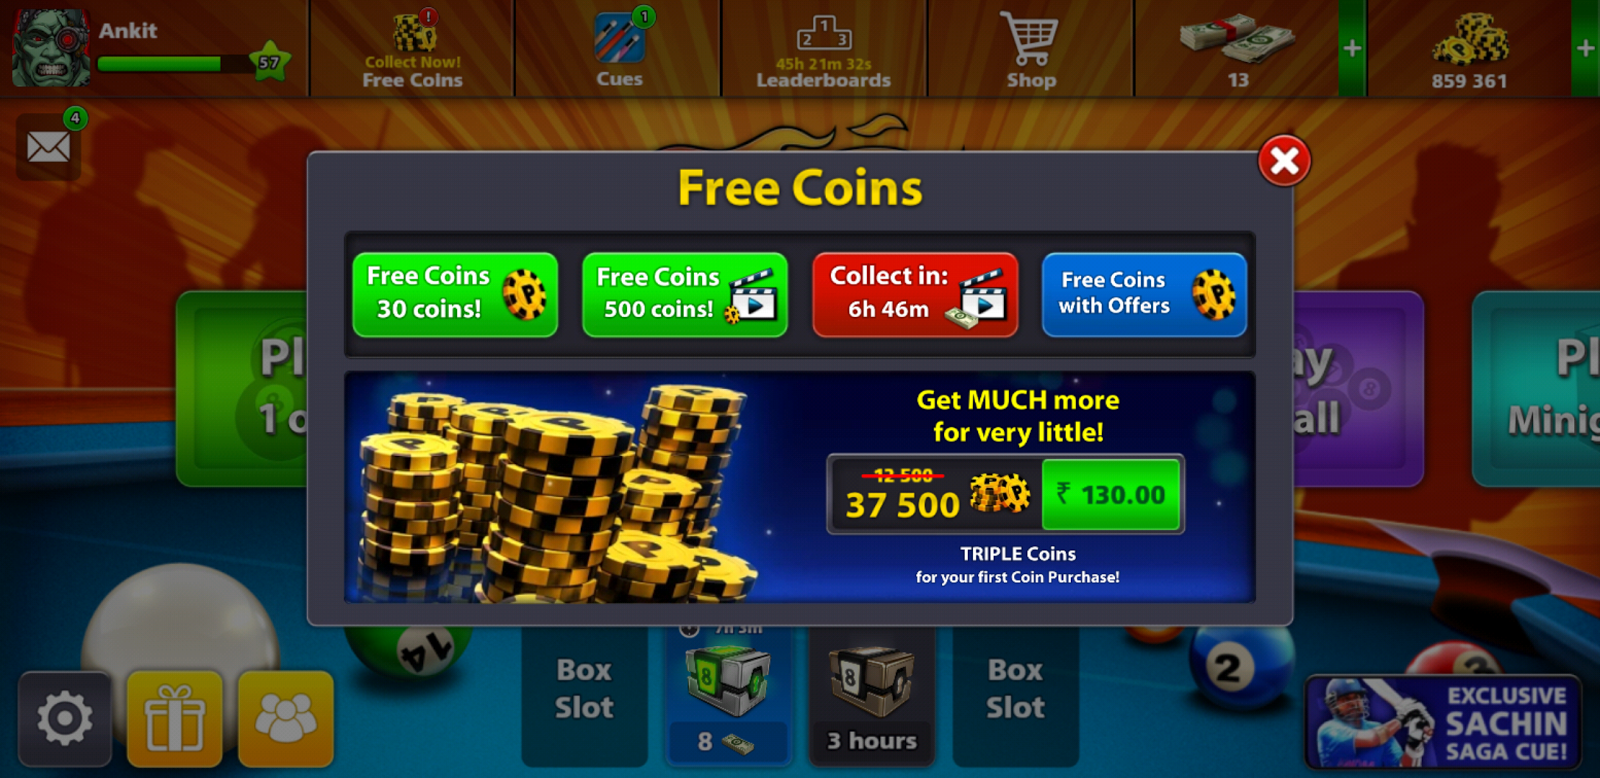 8 Ball Pool Cash Mod 8 Ball Pool 3 12 3 Apk Download Now 1 Cash Per Day